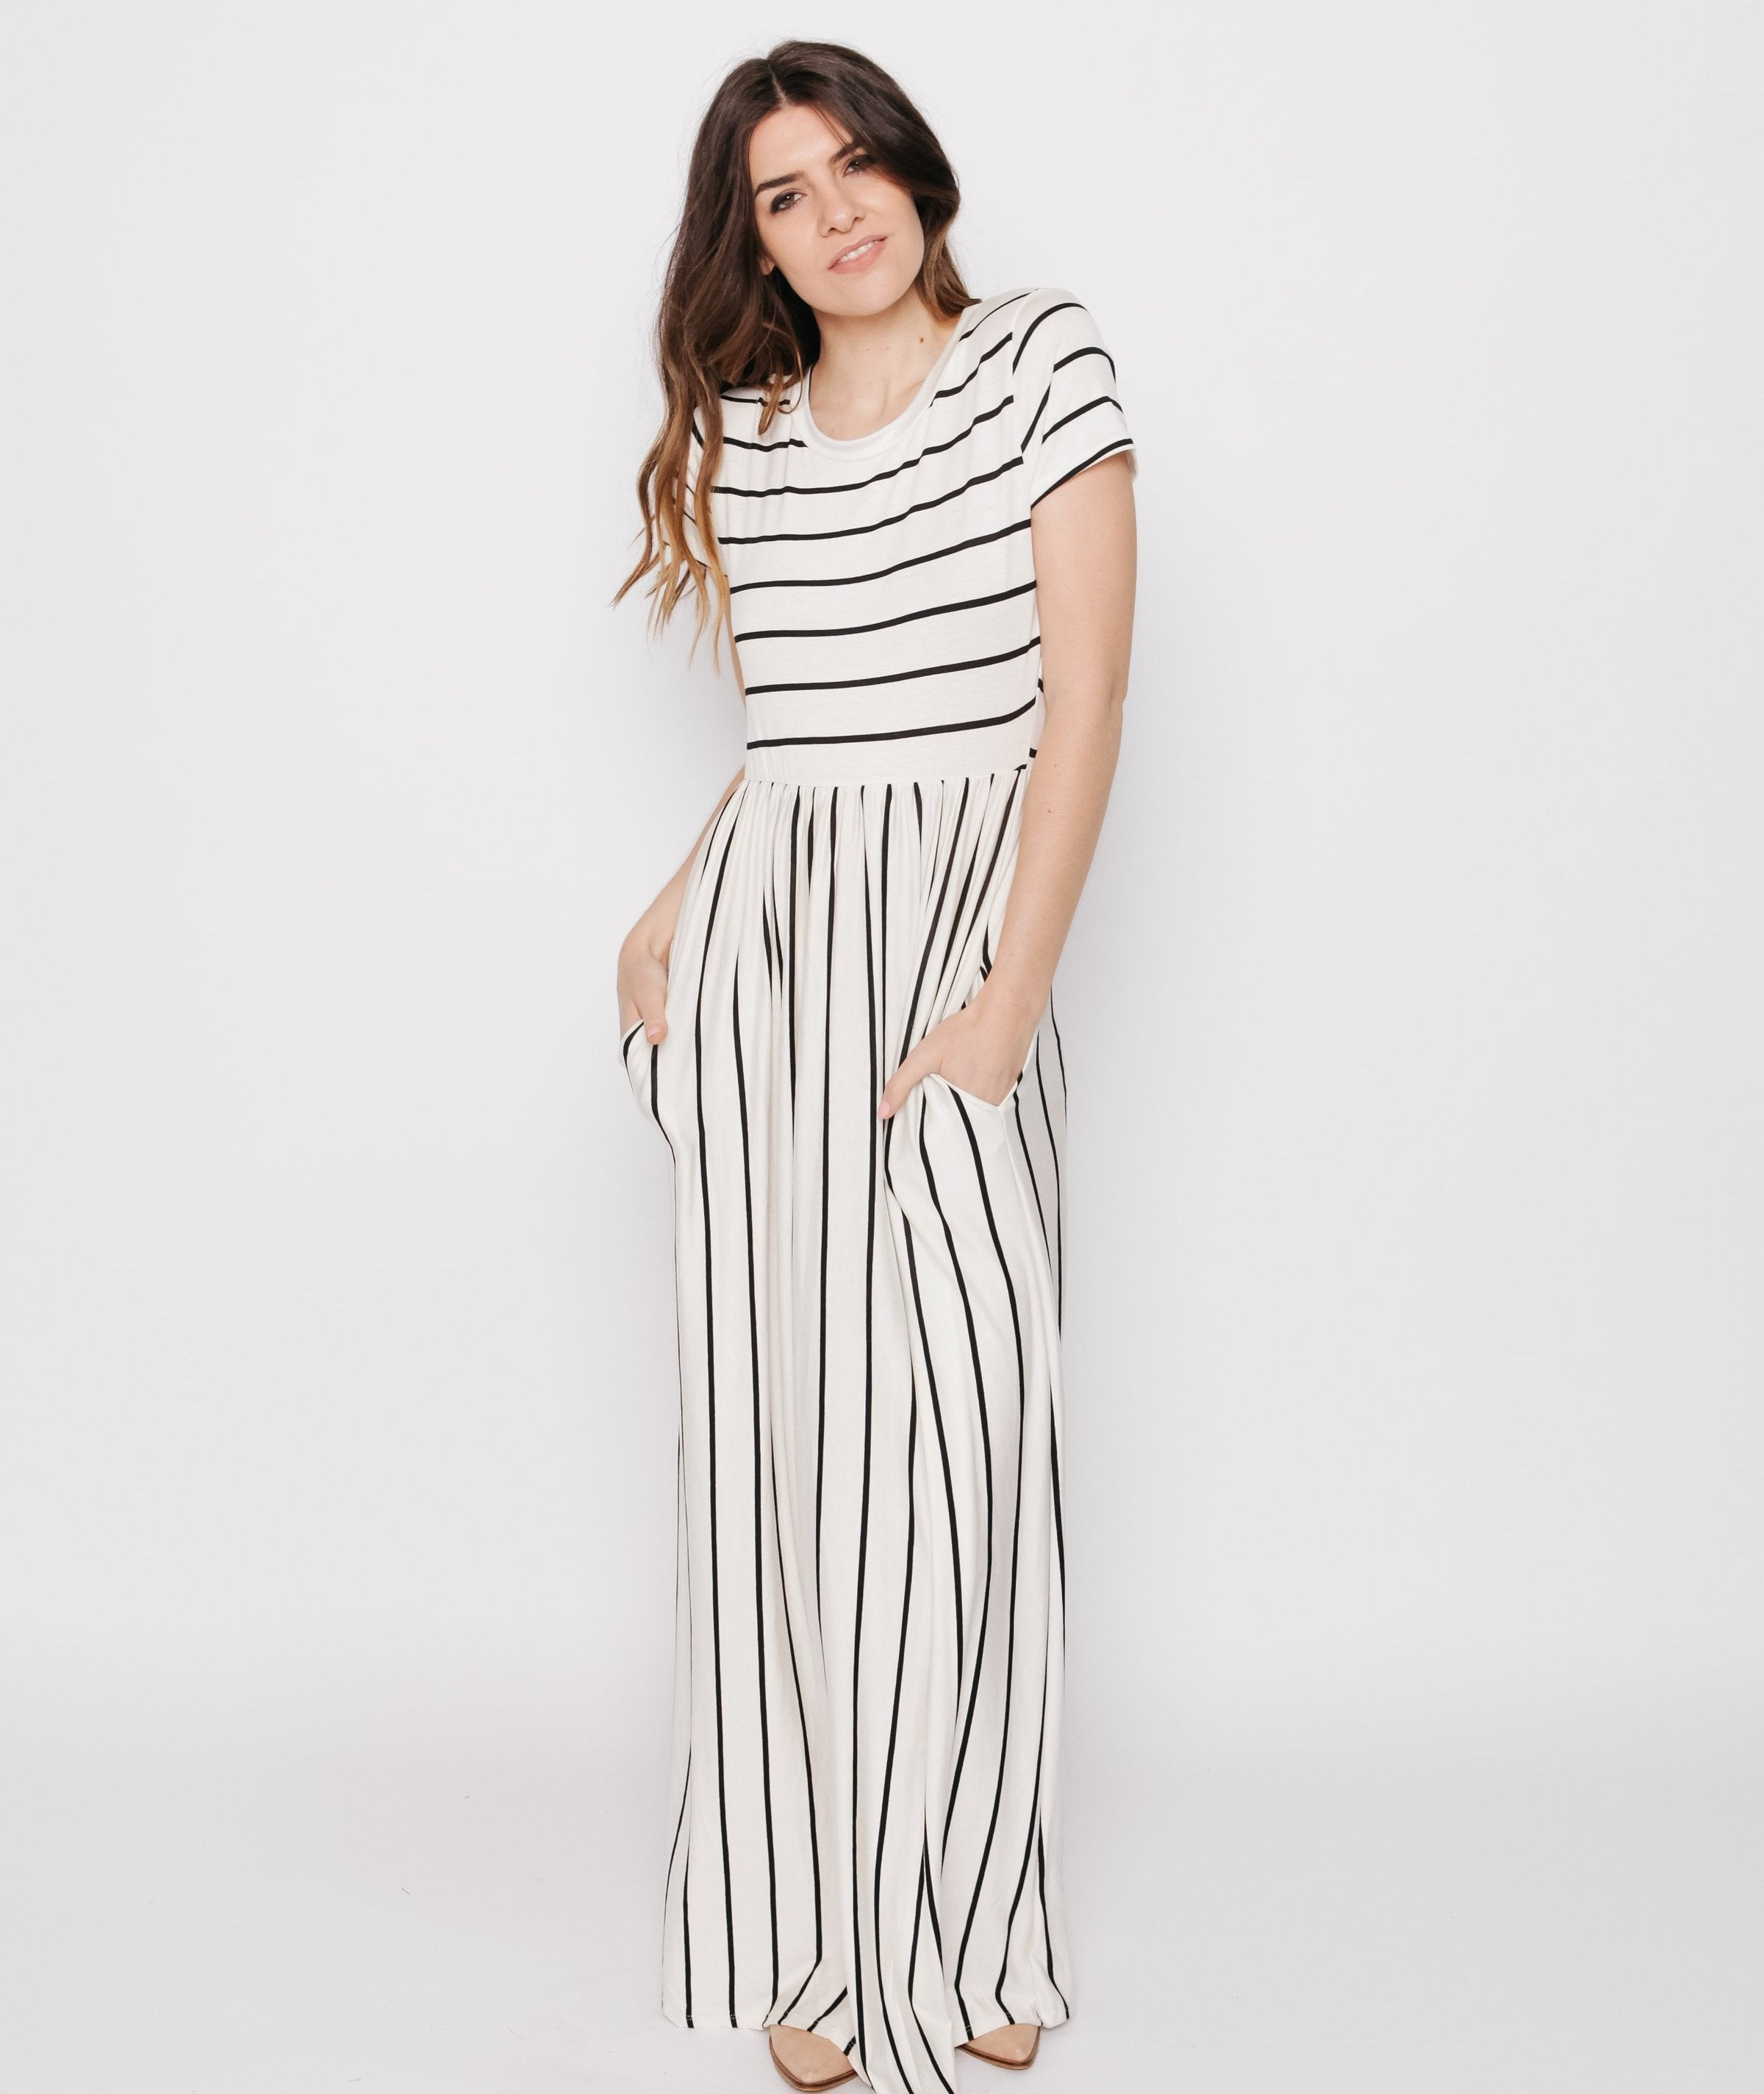 Matilda Striped Maxi Dress - Ivory